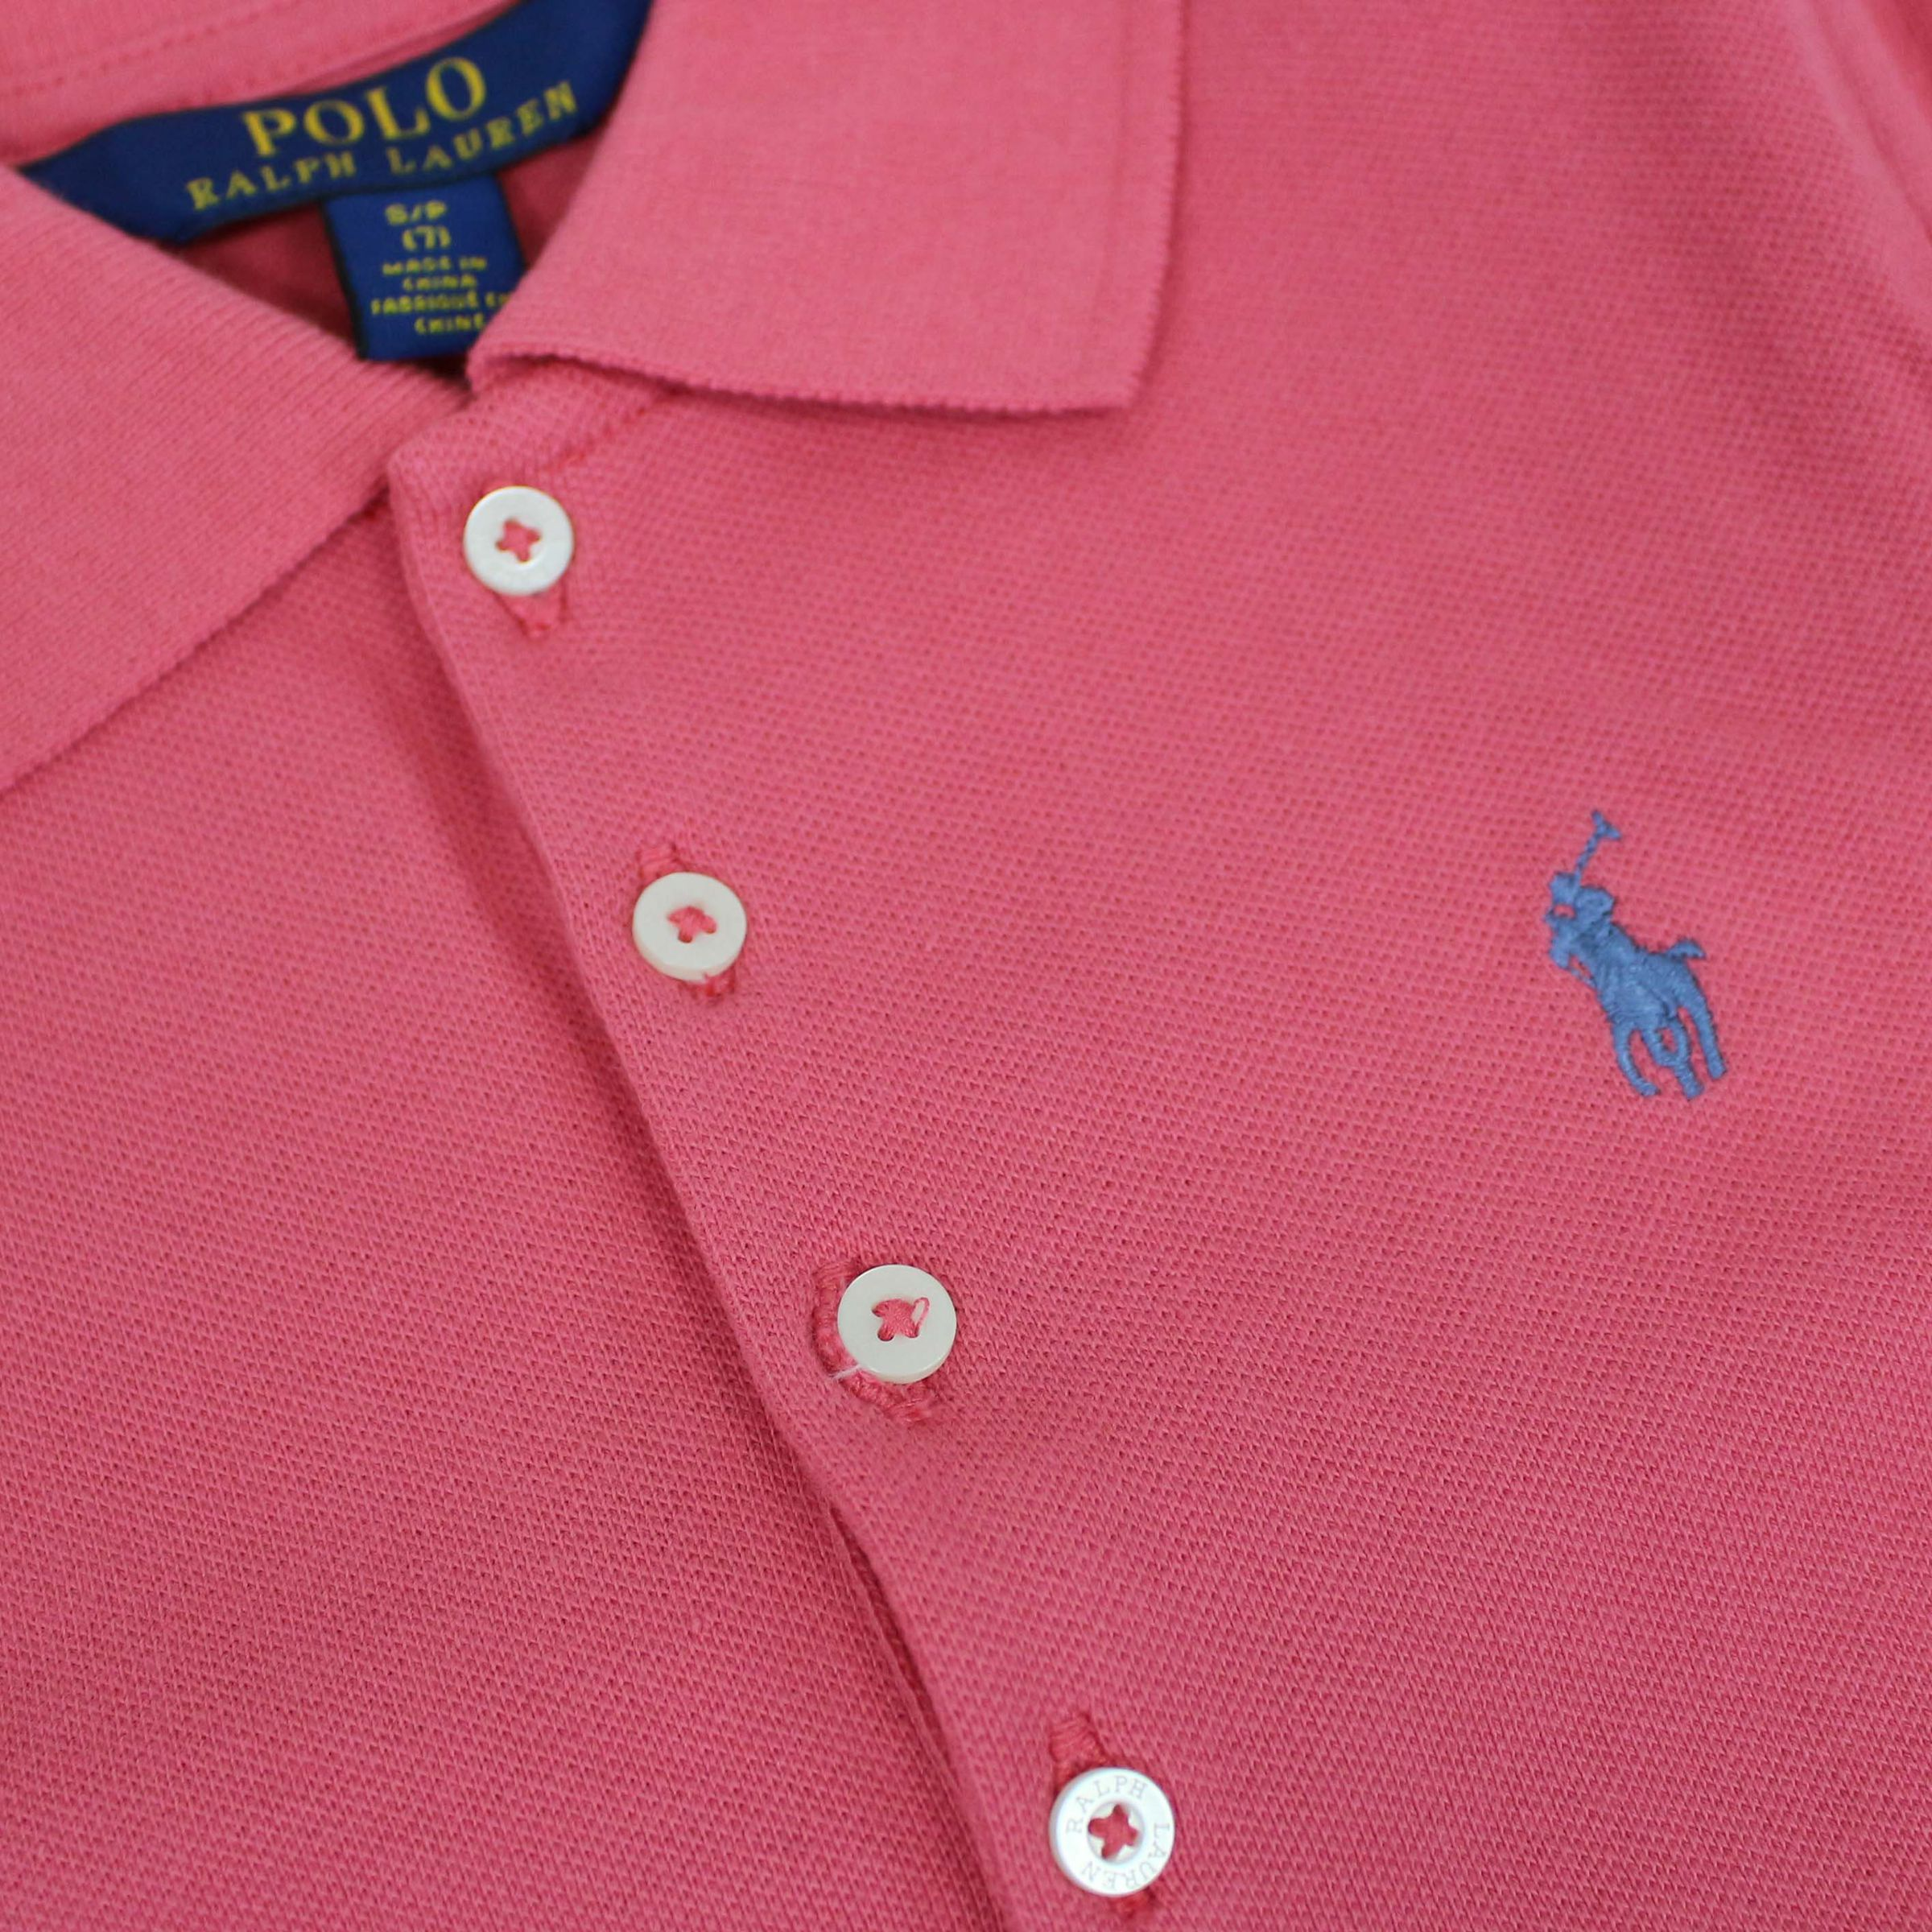 458ae8466 ... Silm-fit polo shirt with logo embroidery Strawberry Polo Ralph Lauren